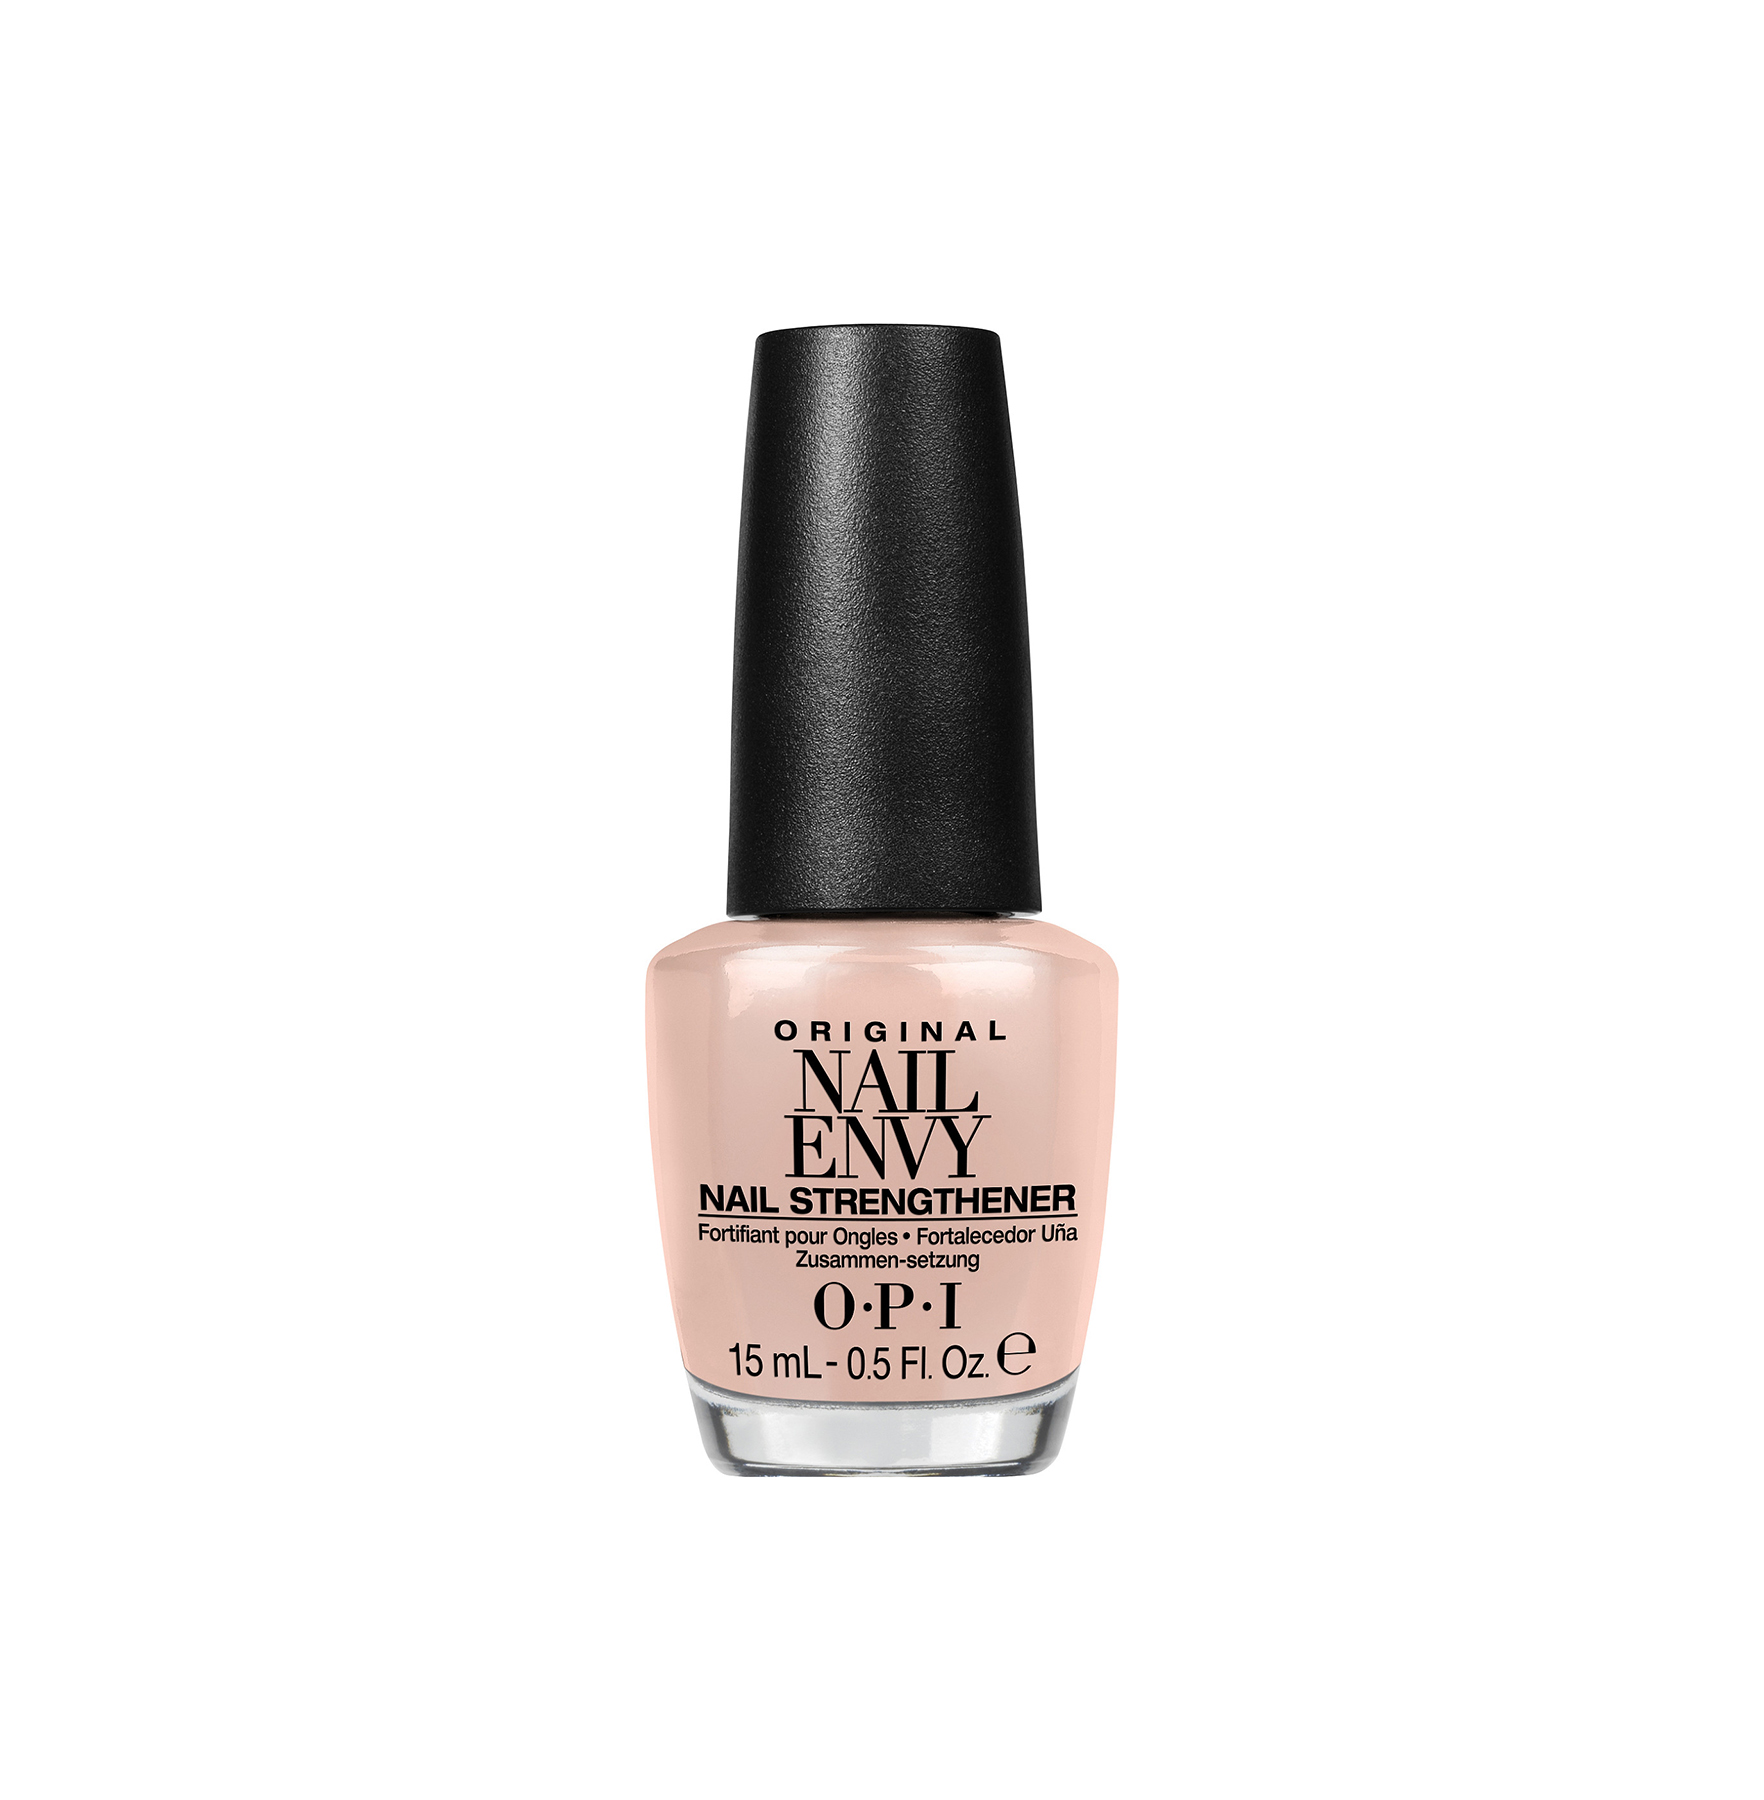 OPI Original Nail Envy Nail Strengthener in Samoan Sand